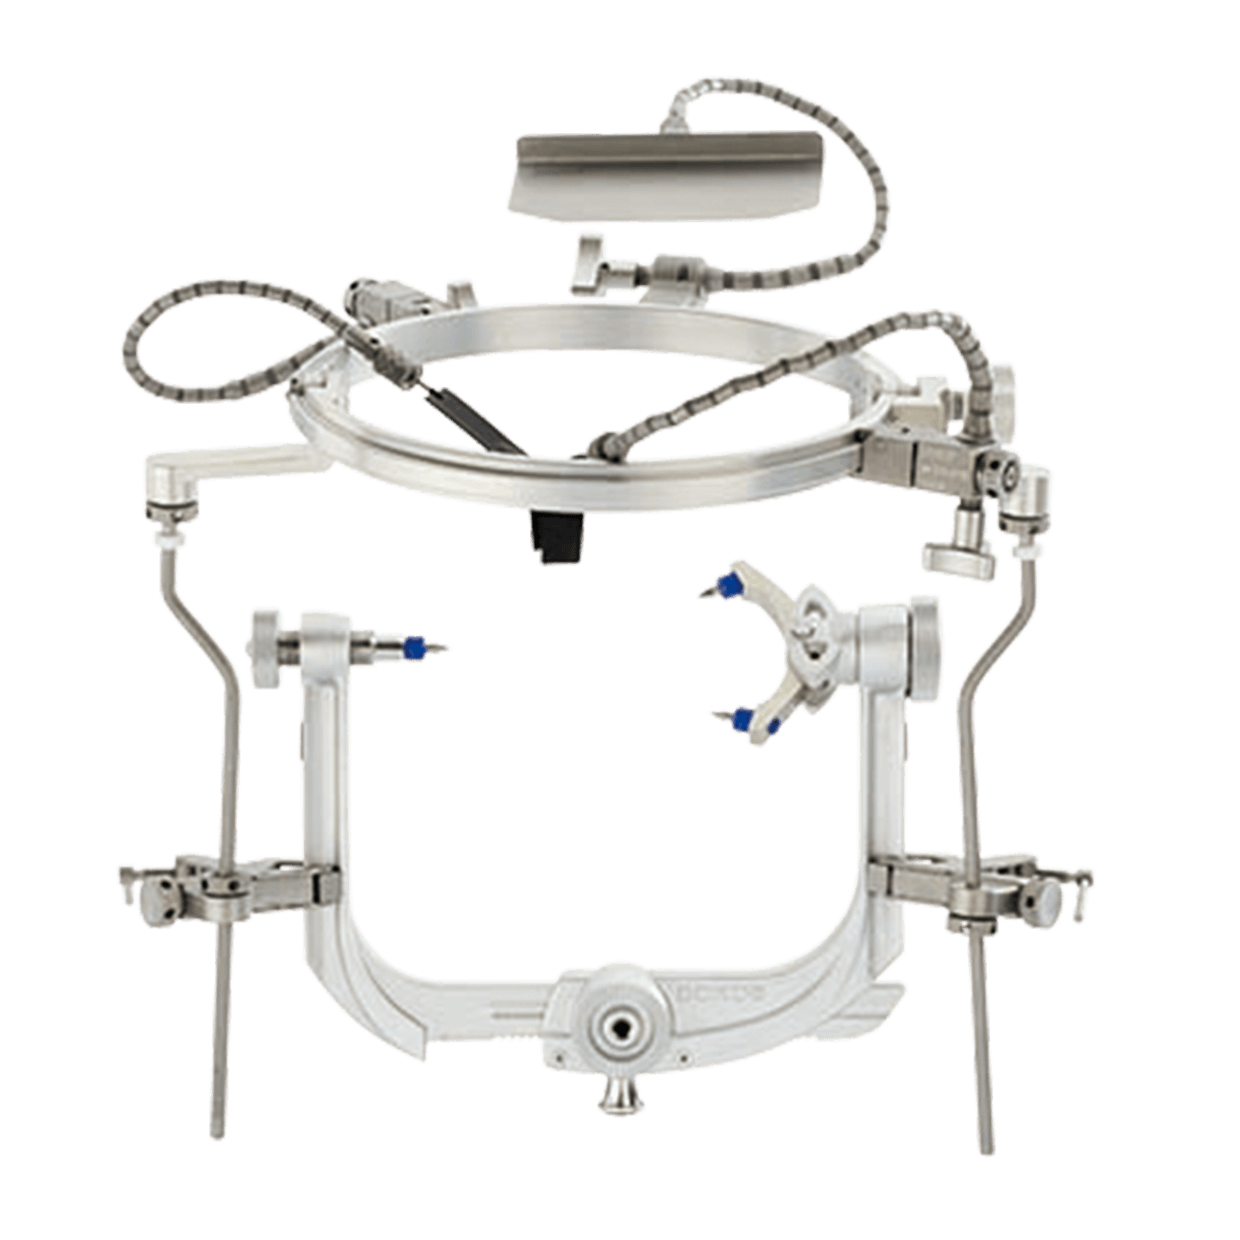 Halo Retractor System